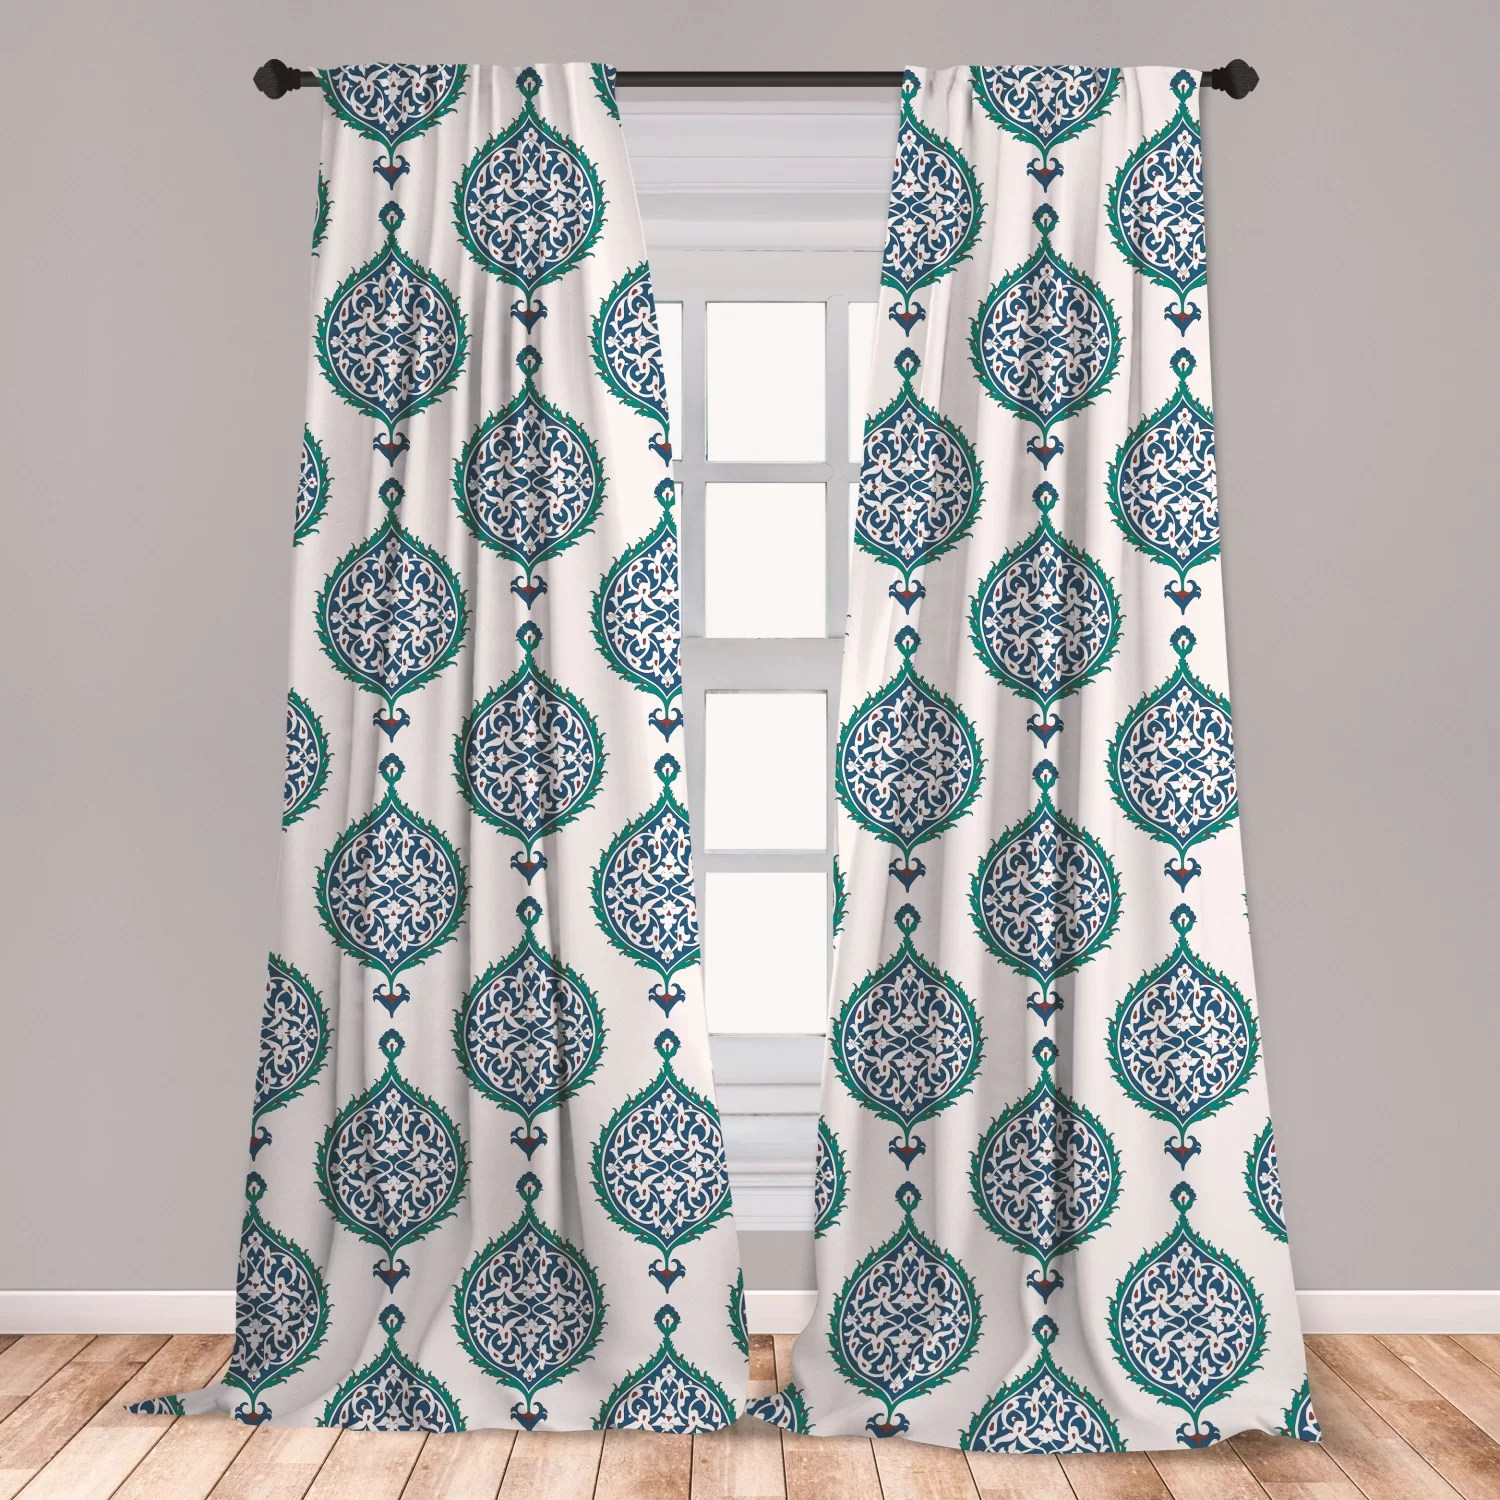 ambesonne turkish pattern curtains leaves in symmetrical order cultures of the east theme window treatments 2 panel set for living room bedroom